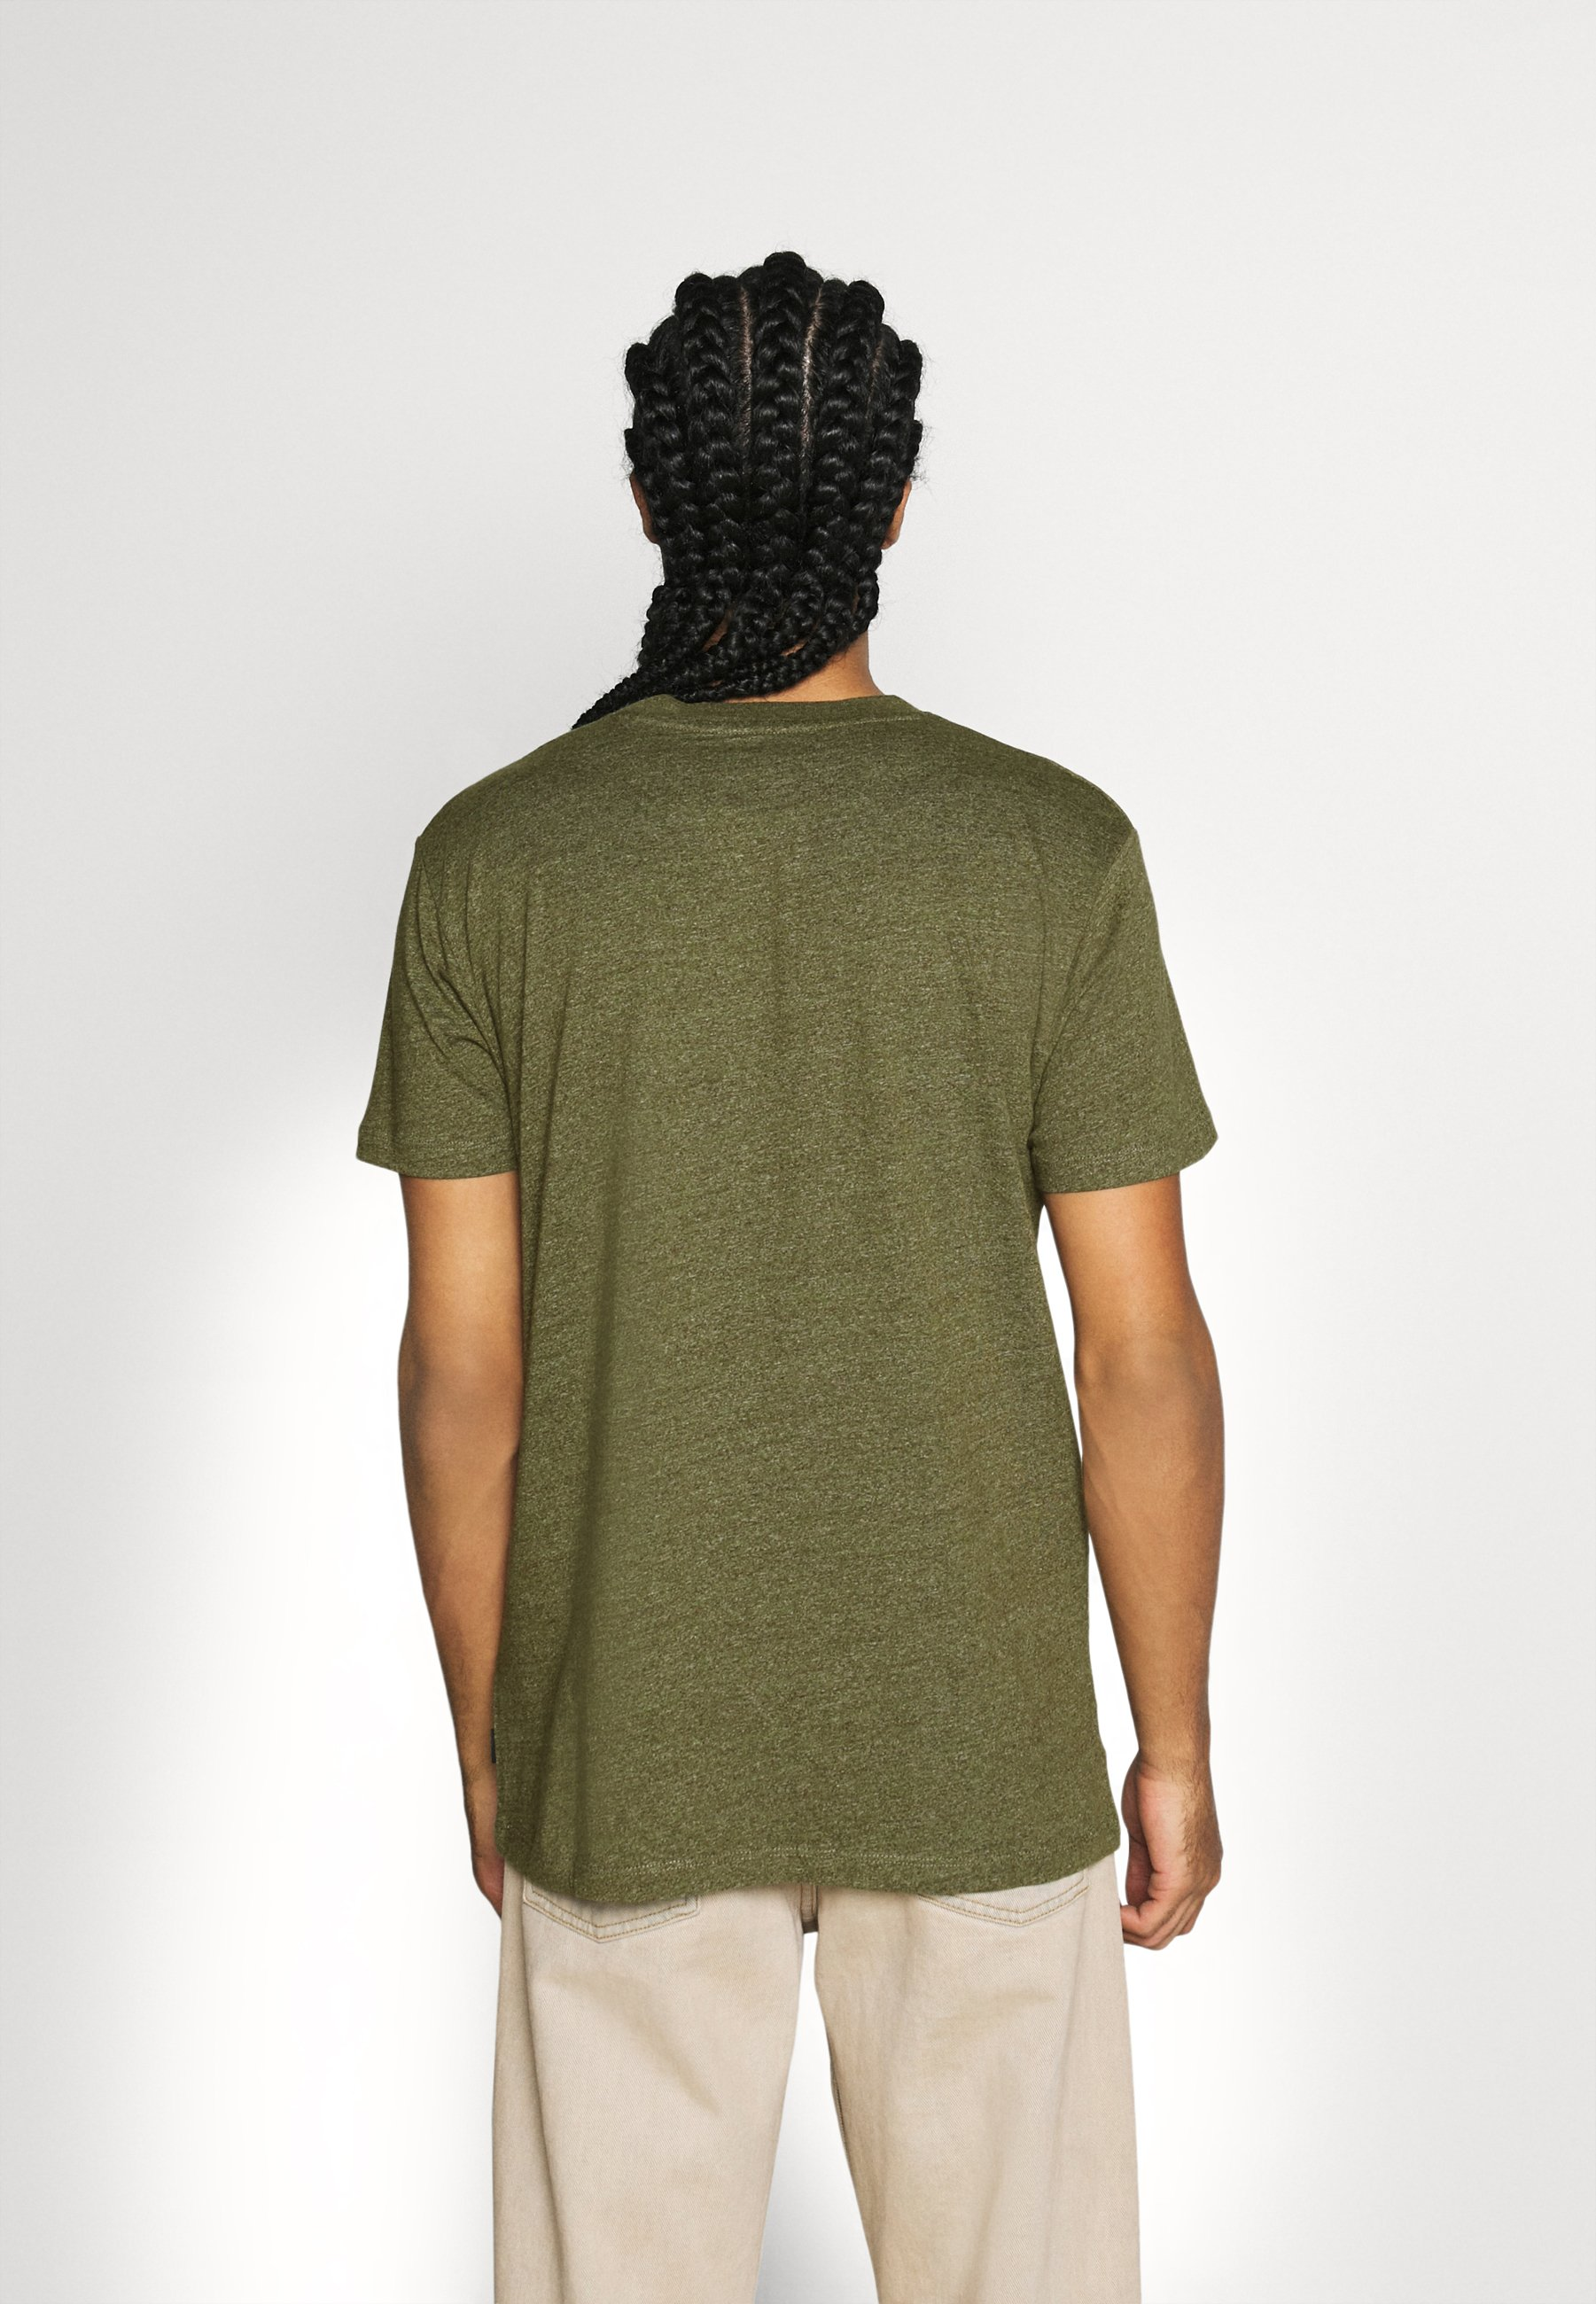 Esprit Basic T-shirt - light khaki OxkUz